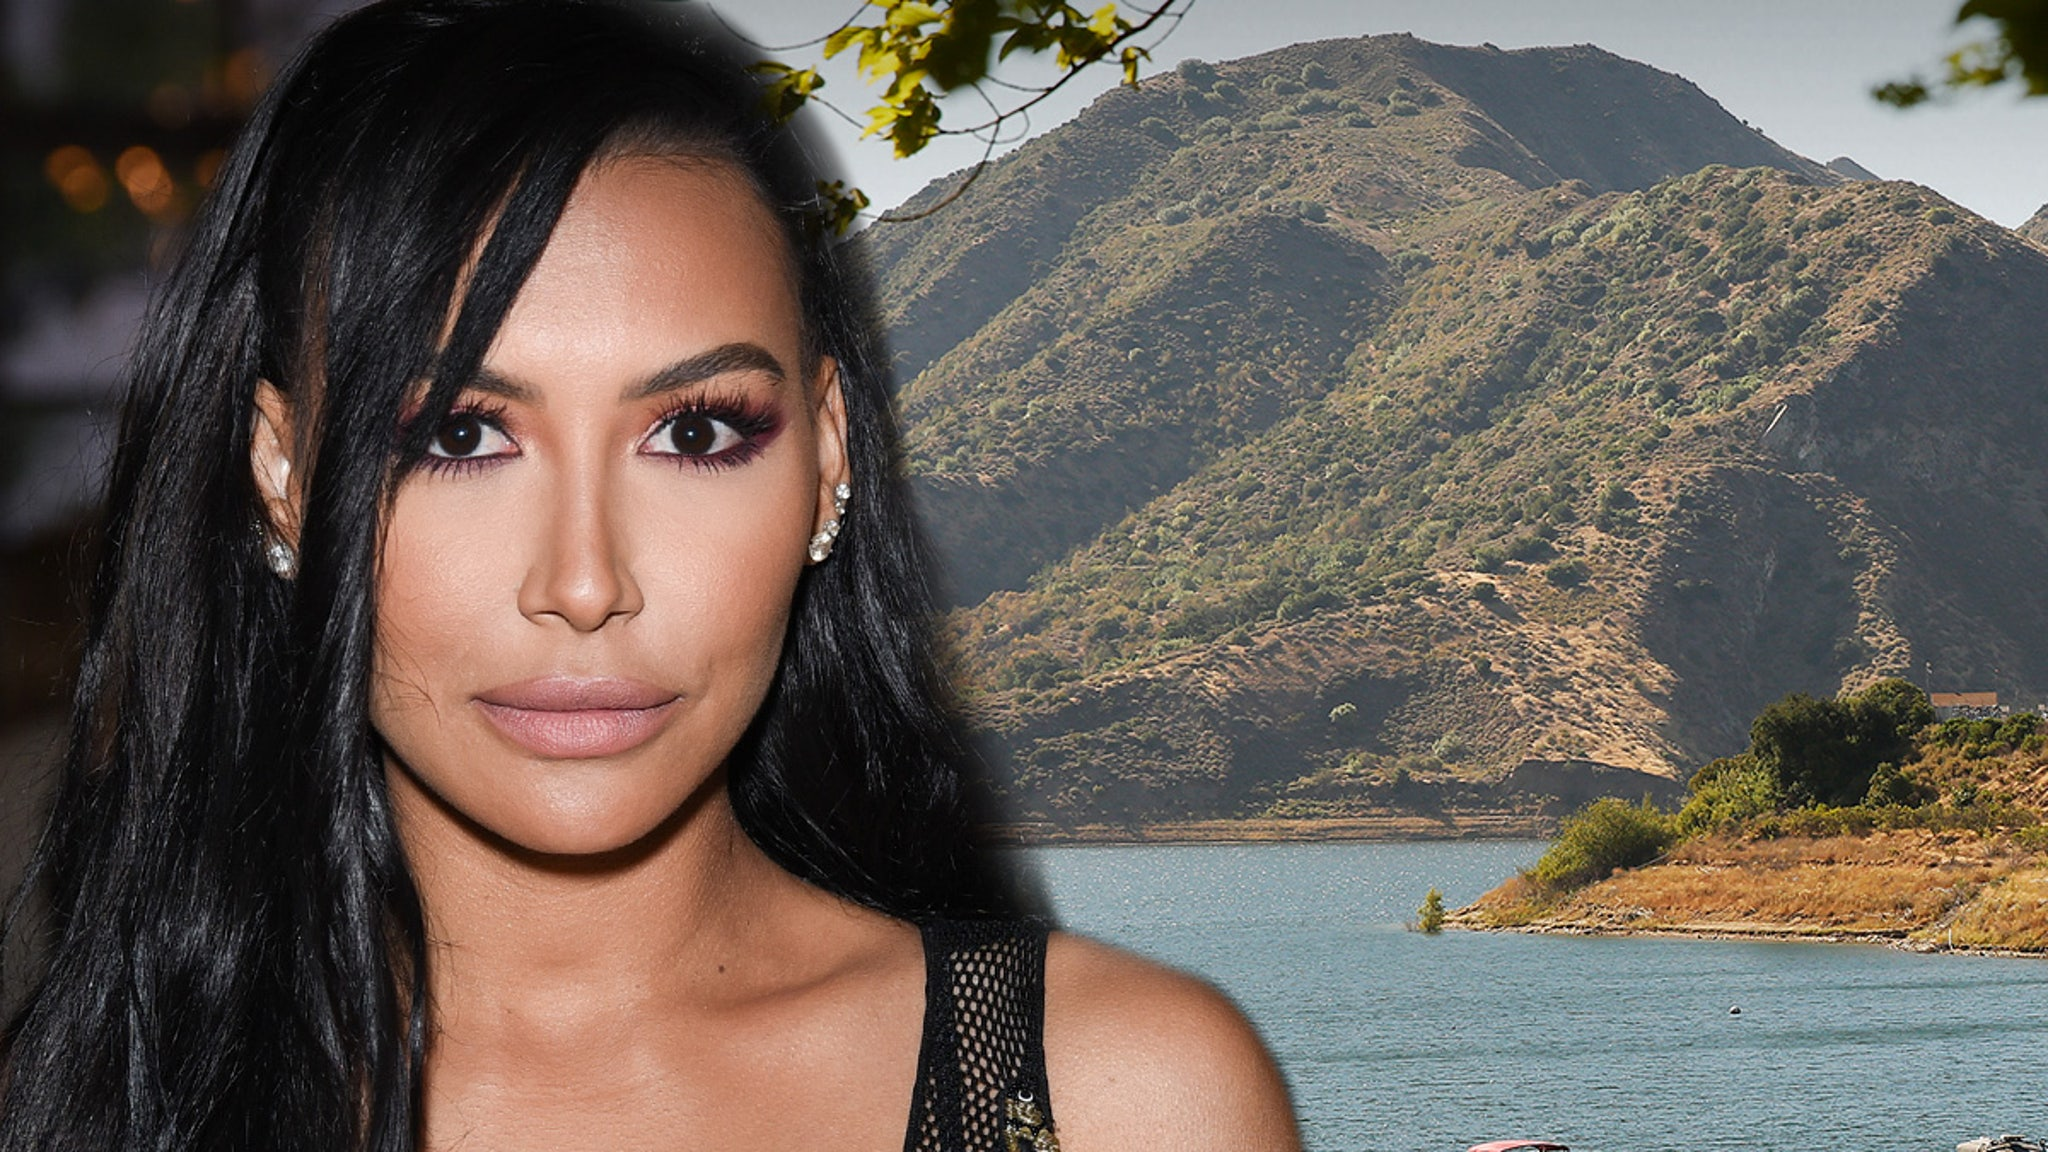 Lake Where Naya Rivera Drowned Reopens for First Time Since Death thumbnail